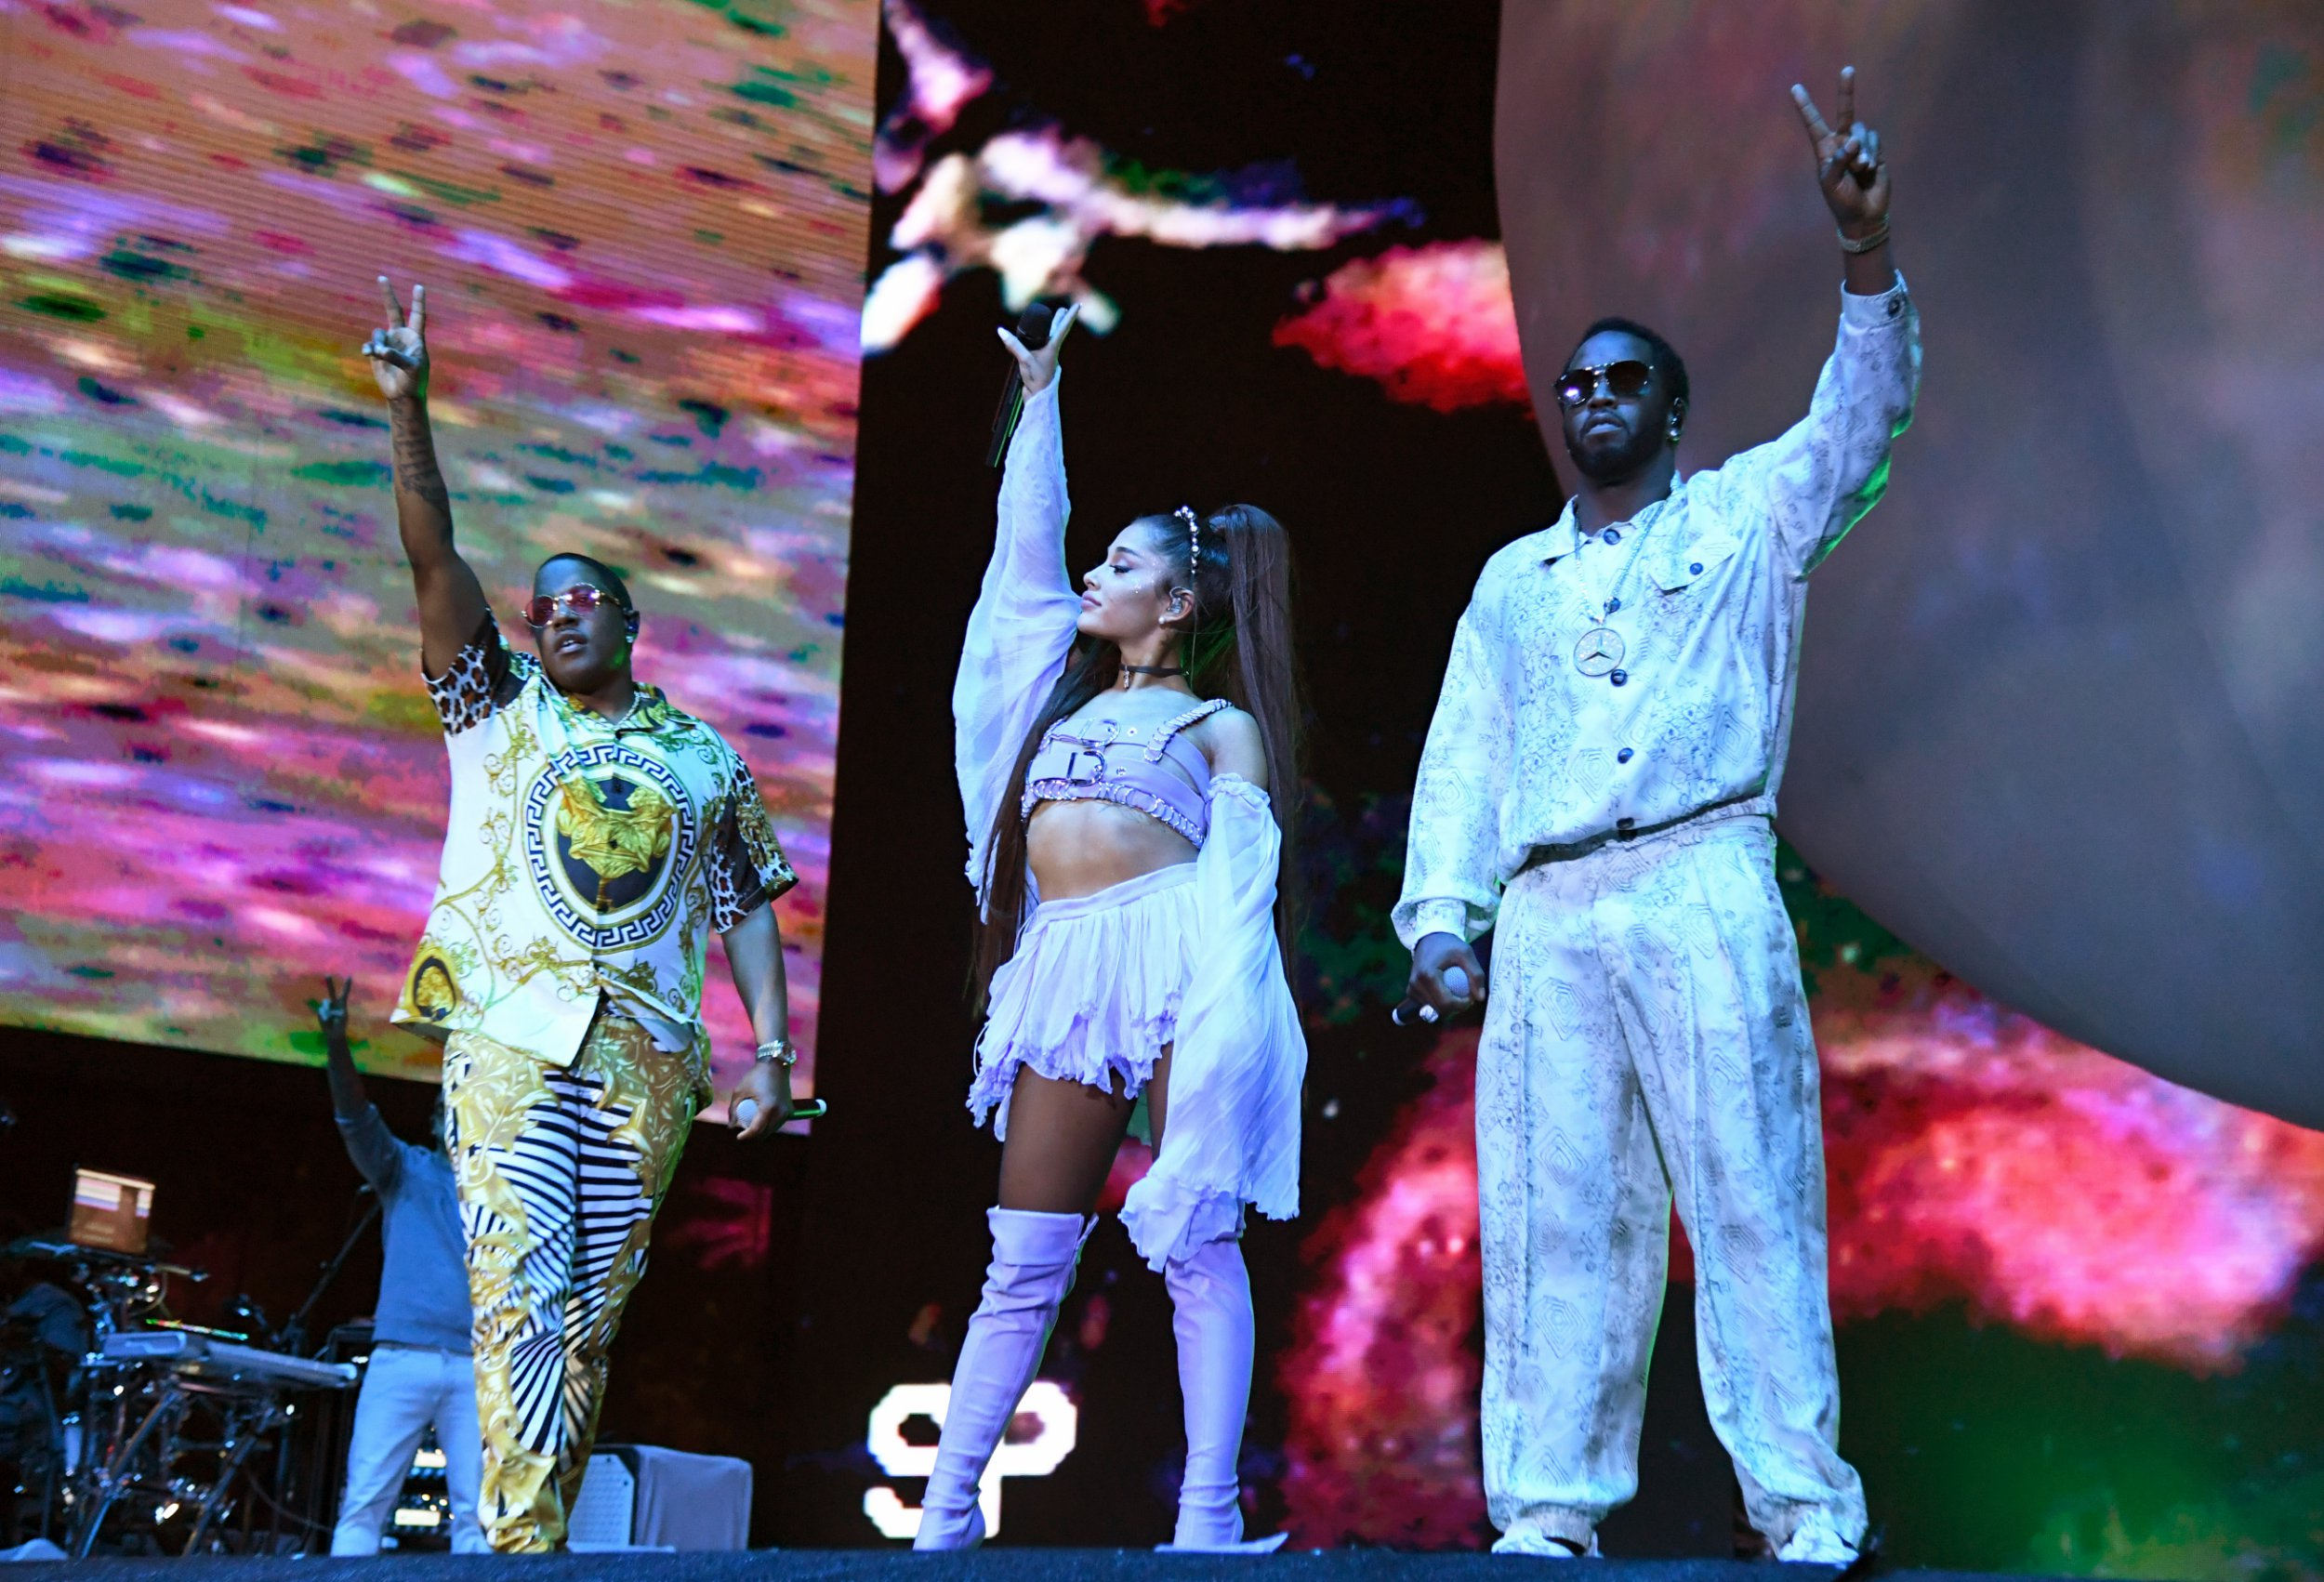 INDIO, CALIFORNIA - APRIL 14: (L-R) Mase, Ariana Grande and Diddy perform on Coachella Stage during the 2019 Coachella Valley Music And Arts Festival on April 14, 2019 in Indio, California. (Photo by Kevin Mazur/Getty Images for AG)